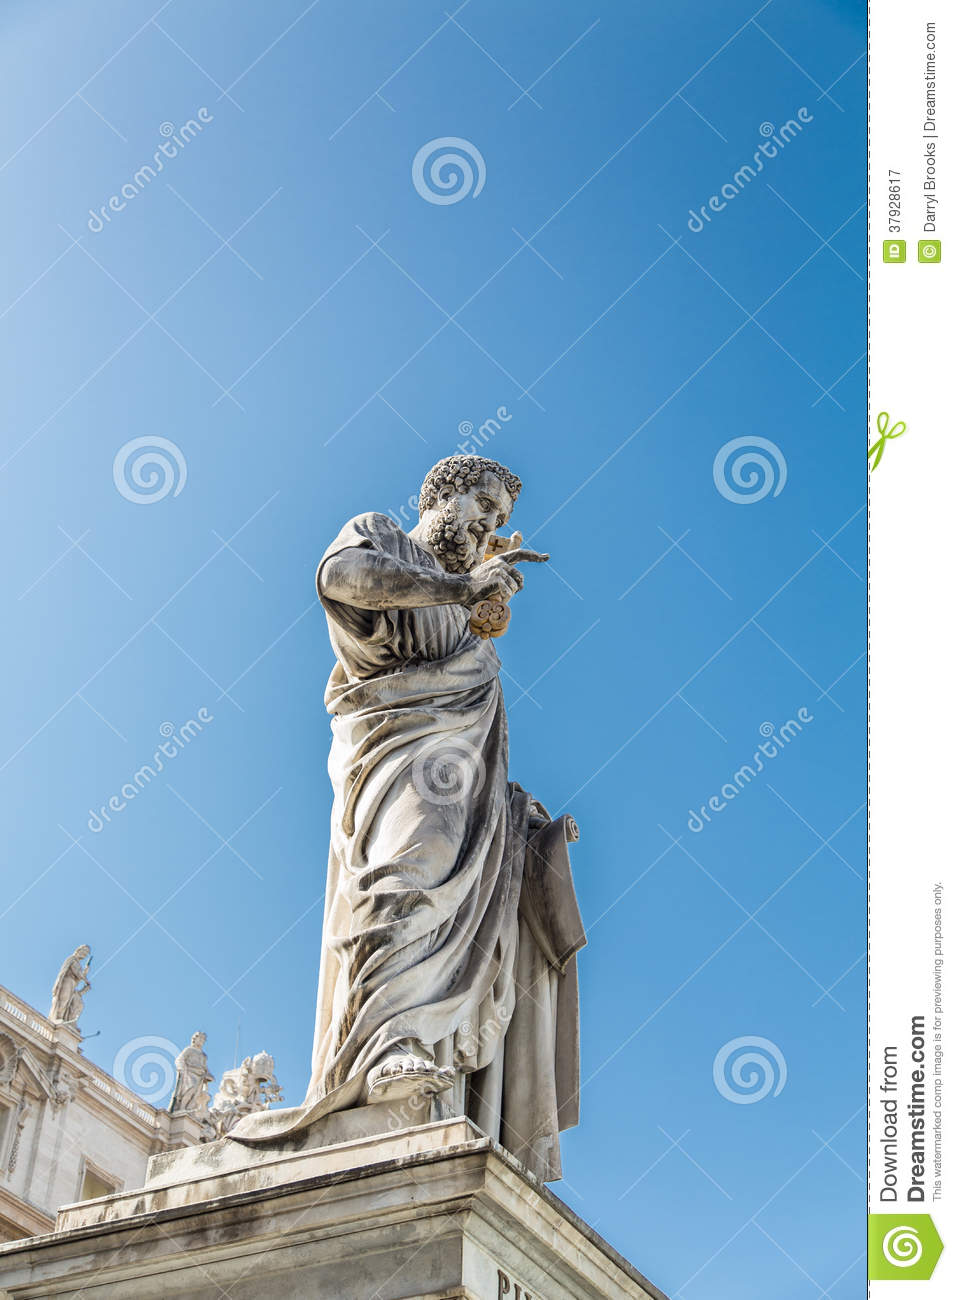 Statua del cielo blu di papa Under a St Peters